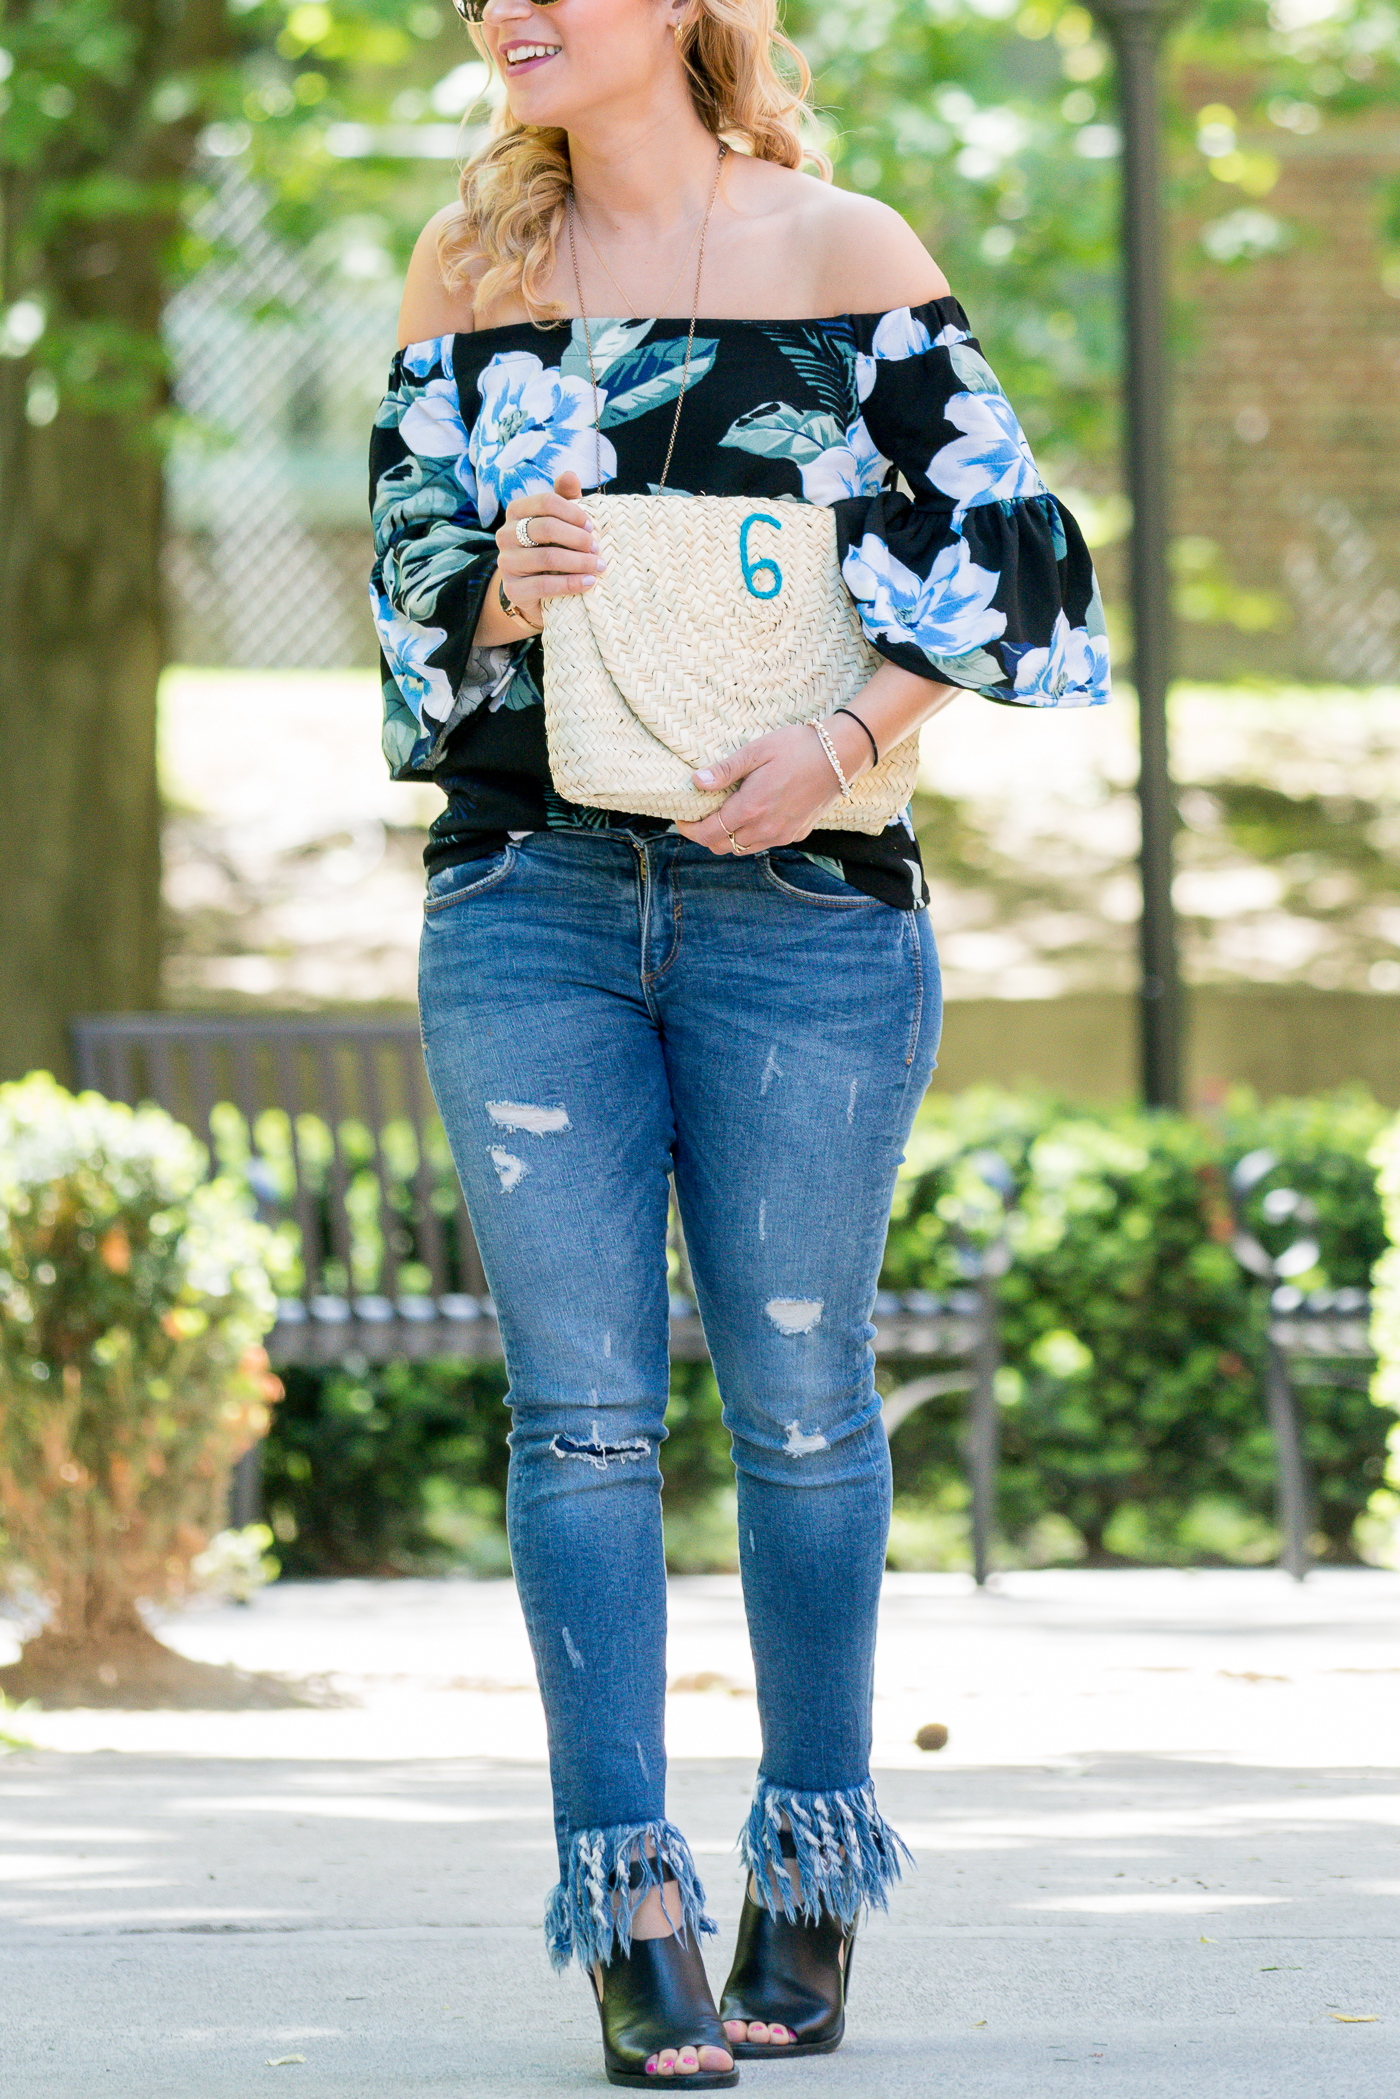 Canadian fashion blogger, Jackie of Something About That, wearing the L'Enveloppe Clutch - 6 from the Tuck Shop Trading Co. for summer